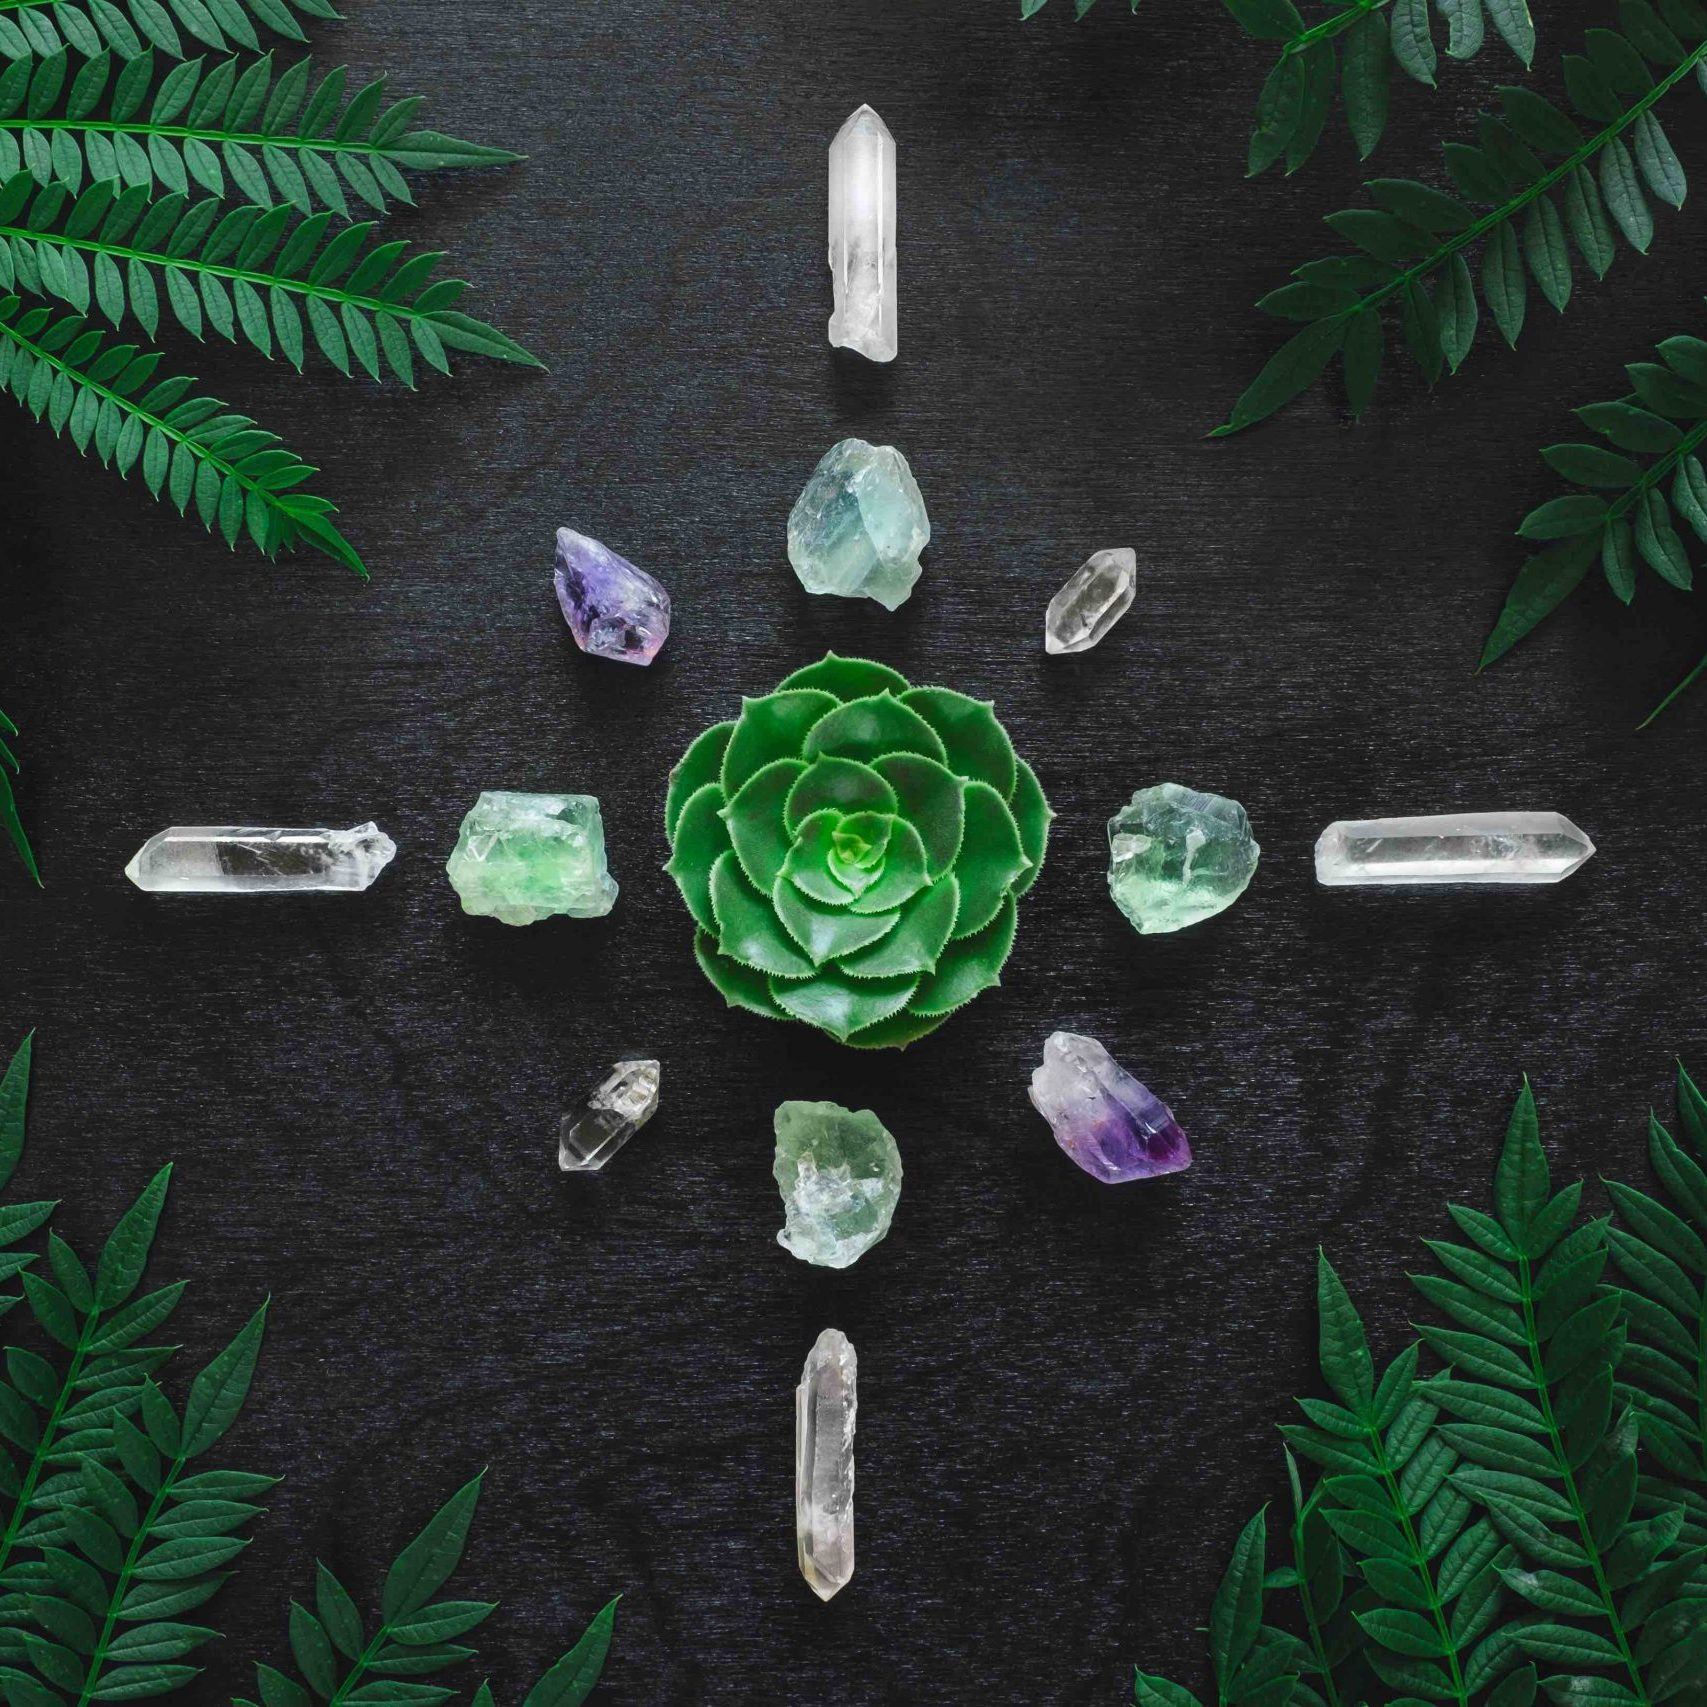 Aeonium and Crystal Grid on Black Table with Clear Quartz, Amethyst, and Fluorite